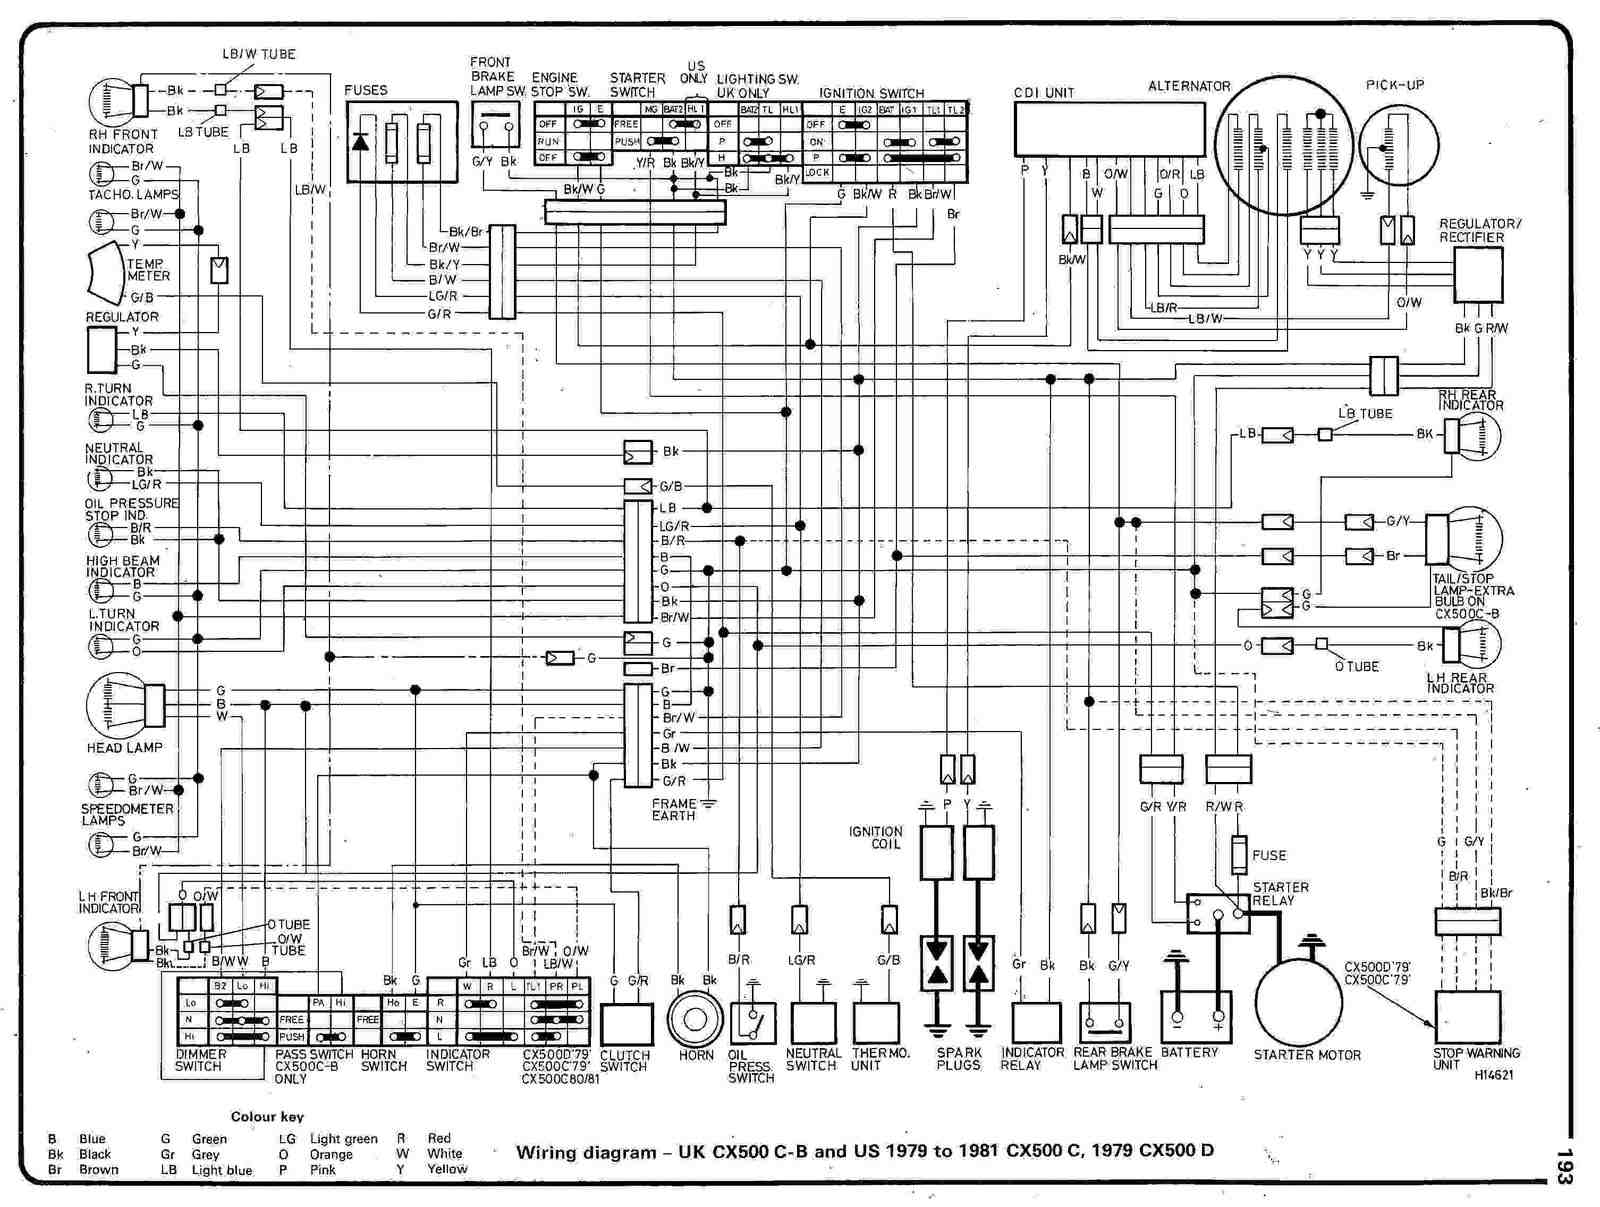 Honda CX500 CB (UK) and (US) CX500 C 197981 and 1979 CX500 D Electrical Wiring Diagram | All